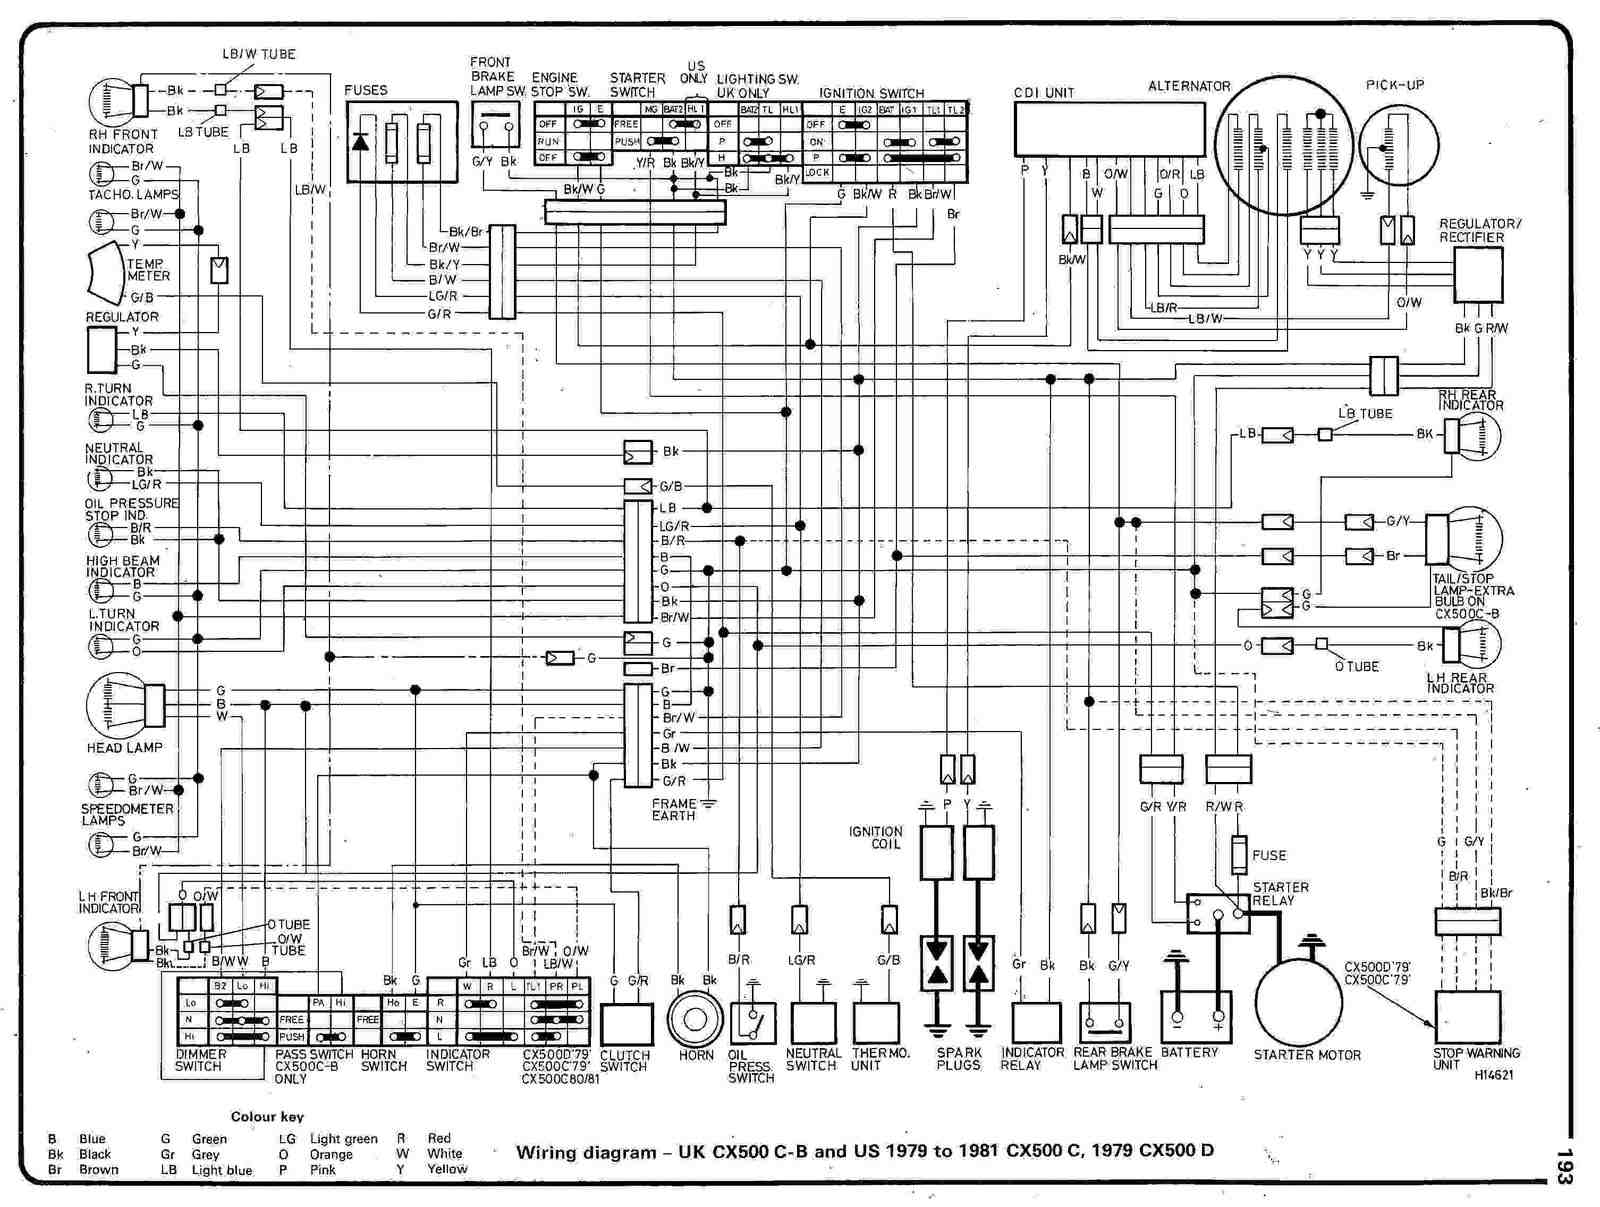 Honda CX500 CB (UK) and (US) CX500 C 197981 and 1979 CX500 D Electrical Wiring Diagram | All